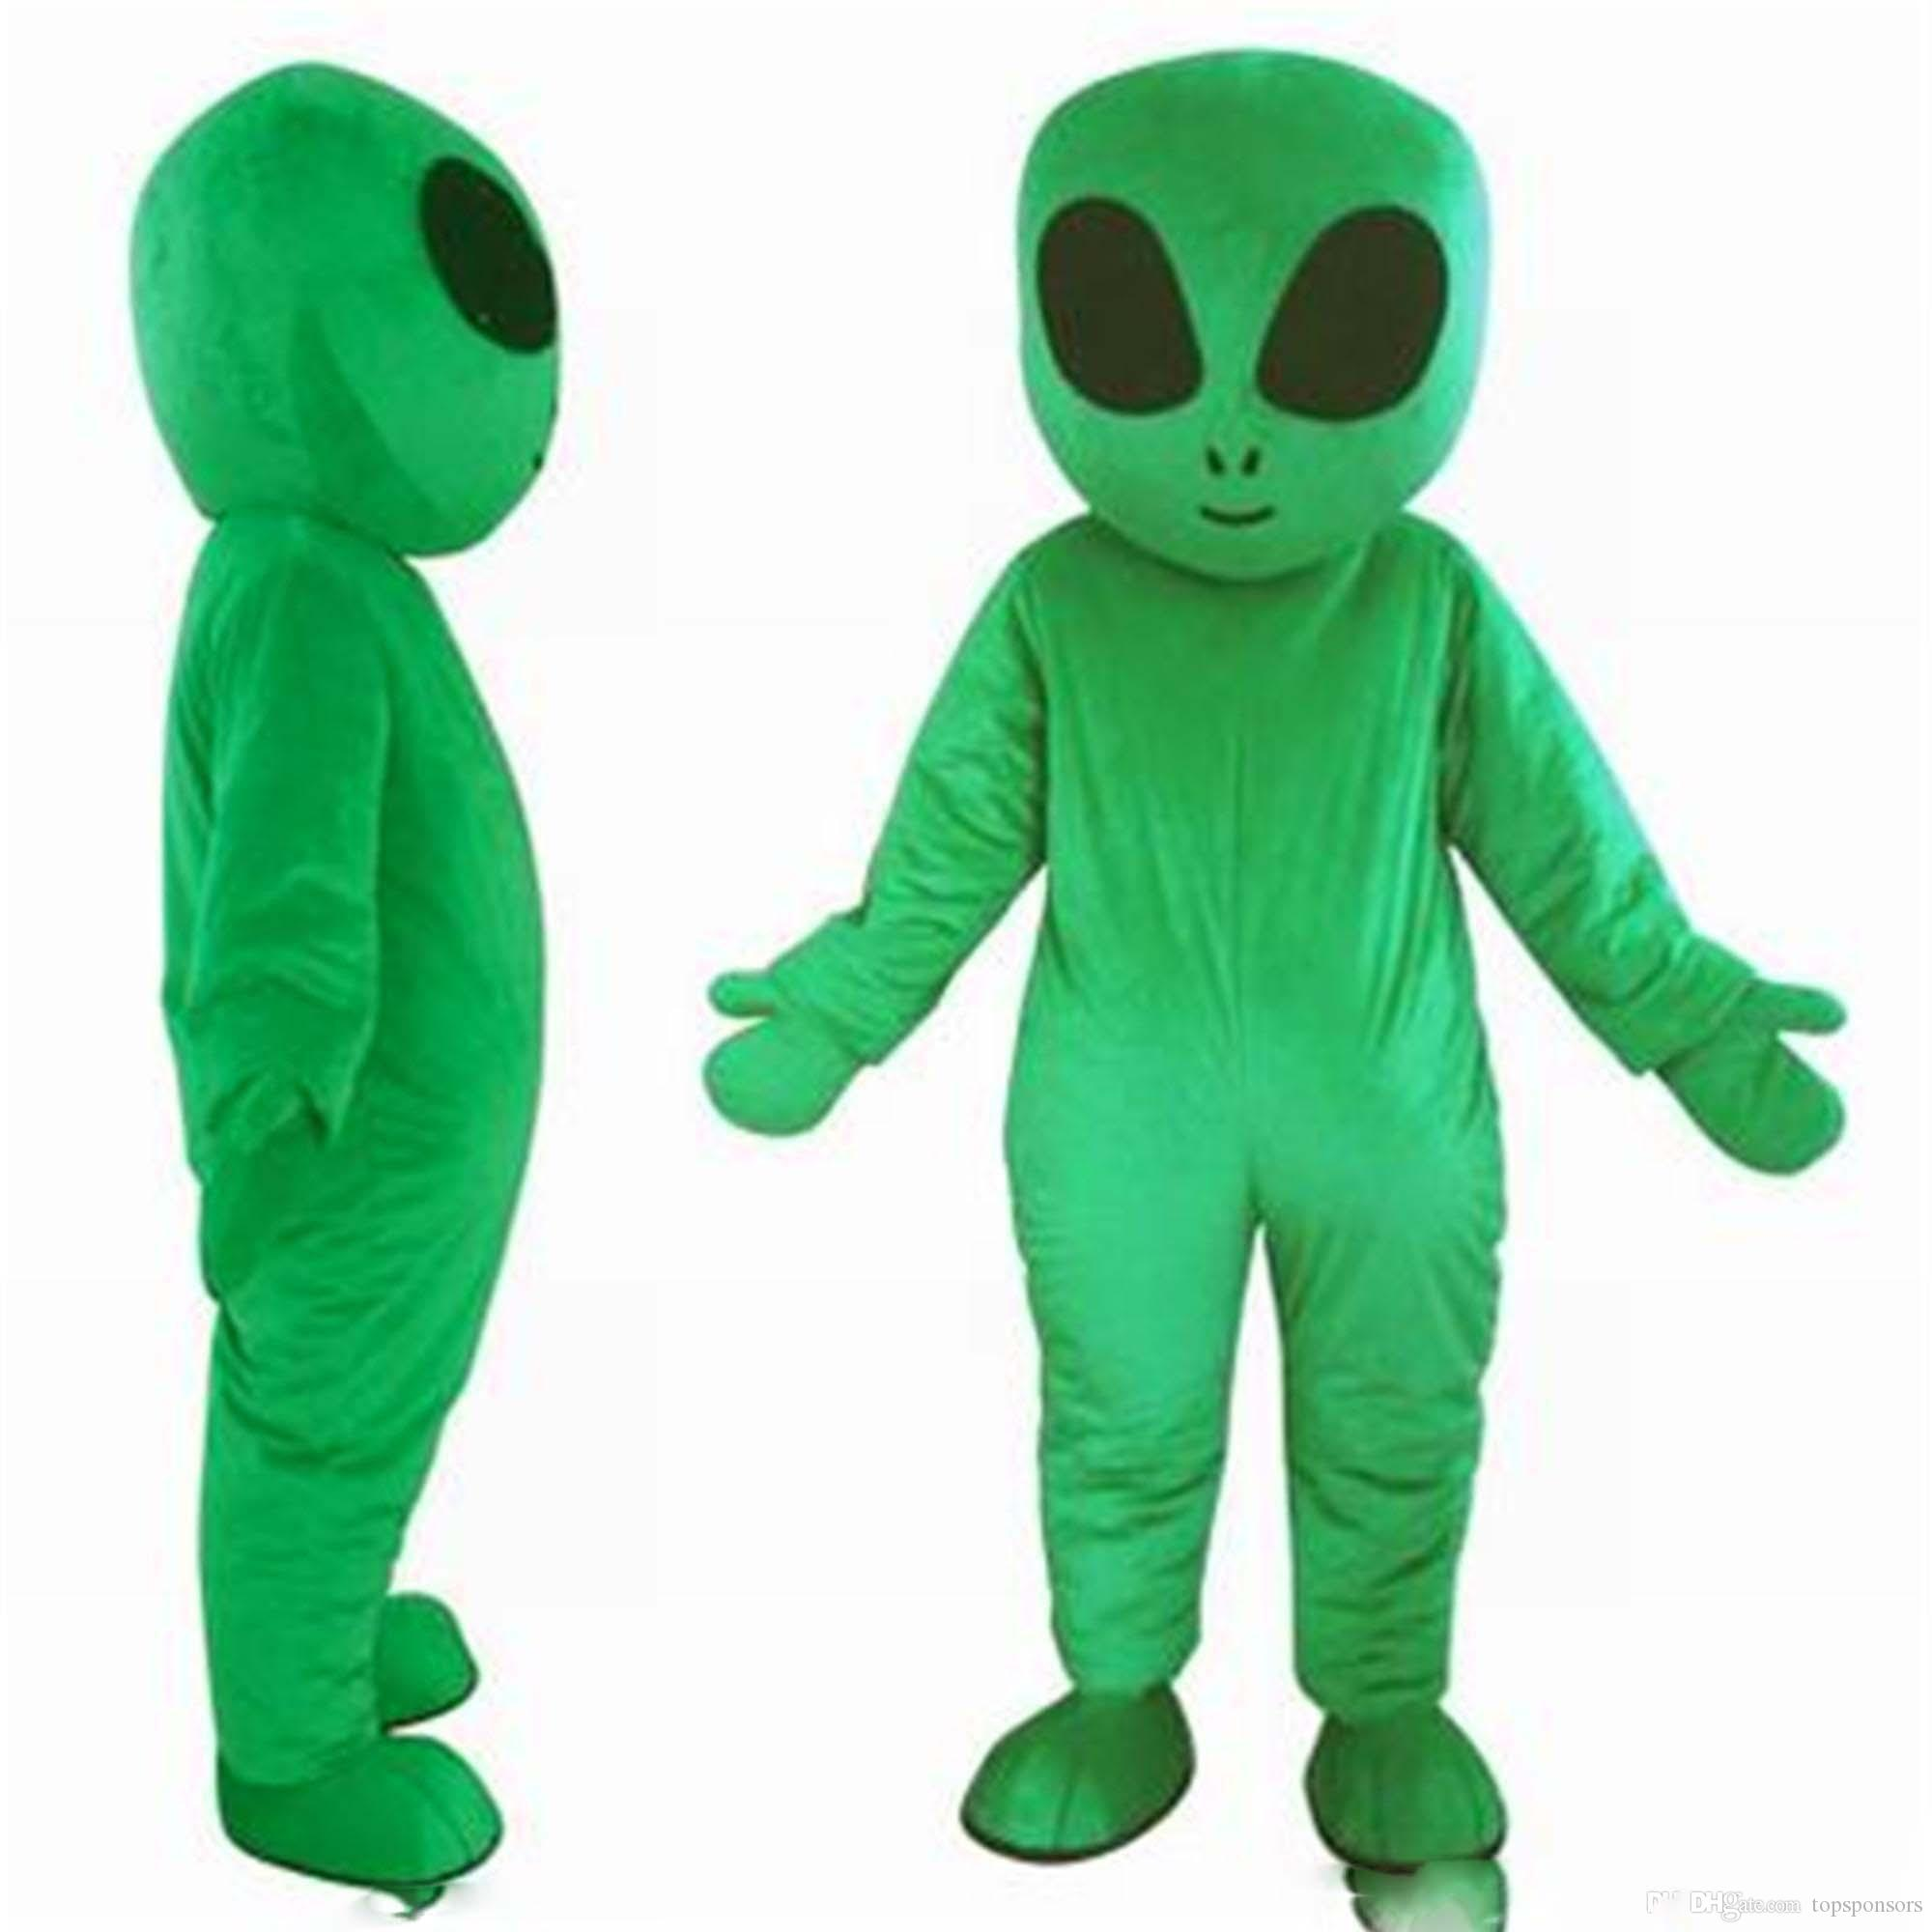 2019 High quality green UFO aliens mascot costume for adults E.T. alien mascot suit for sell